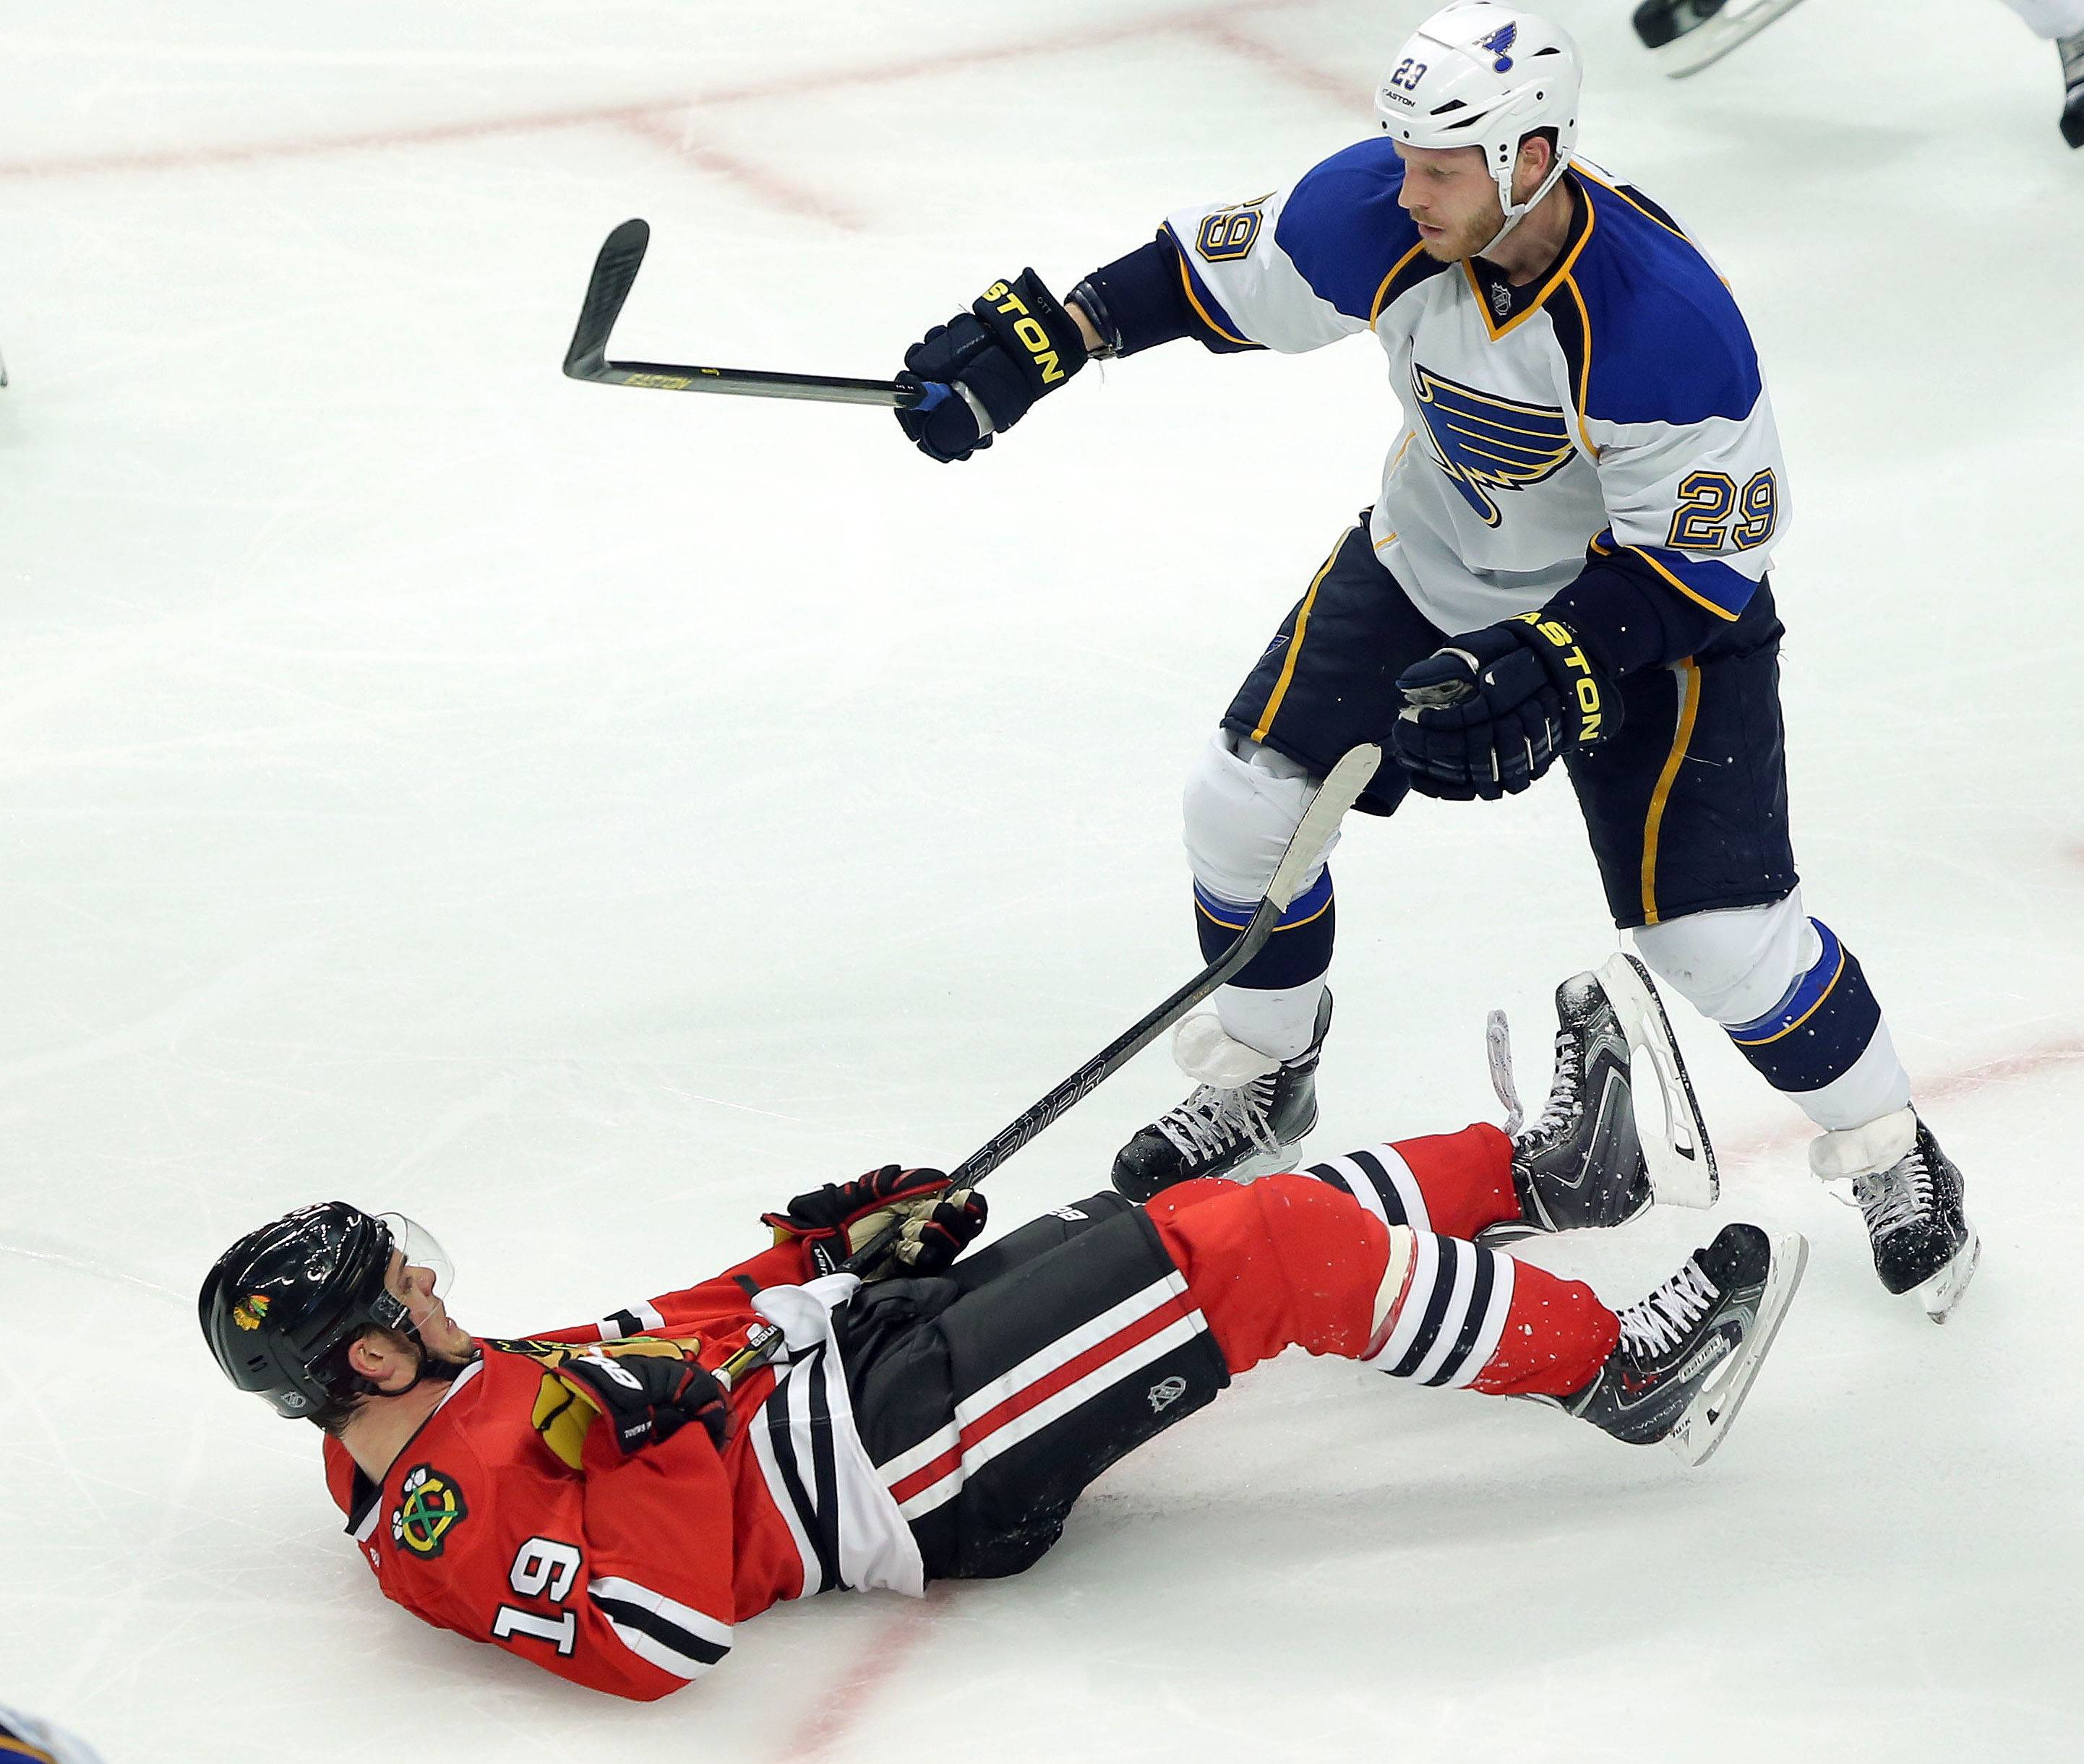 Chicago Blackhawks center Jonathan Toews is taken down by St. Louis Blues center Steve Ott.